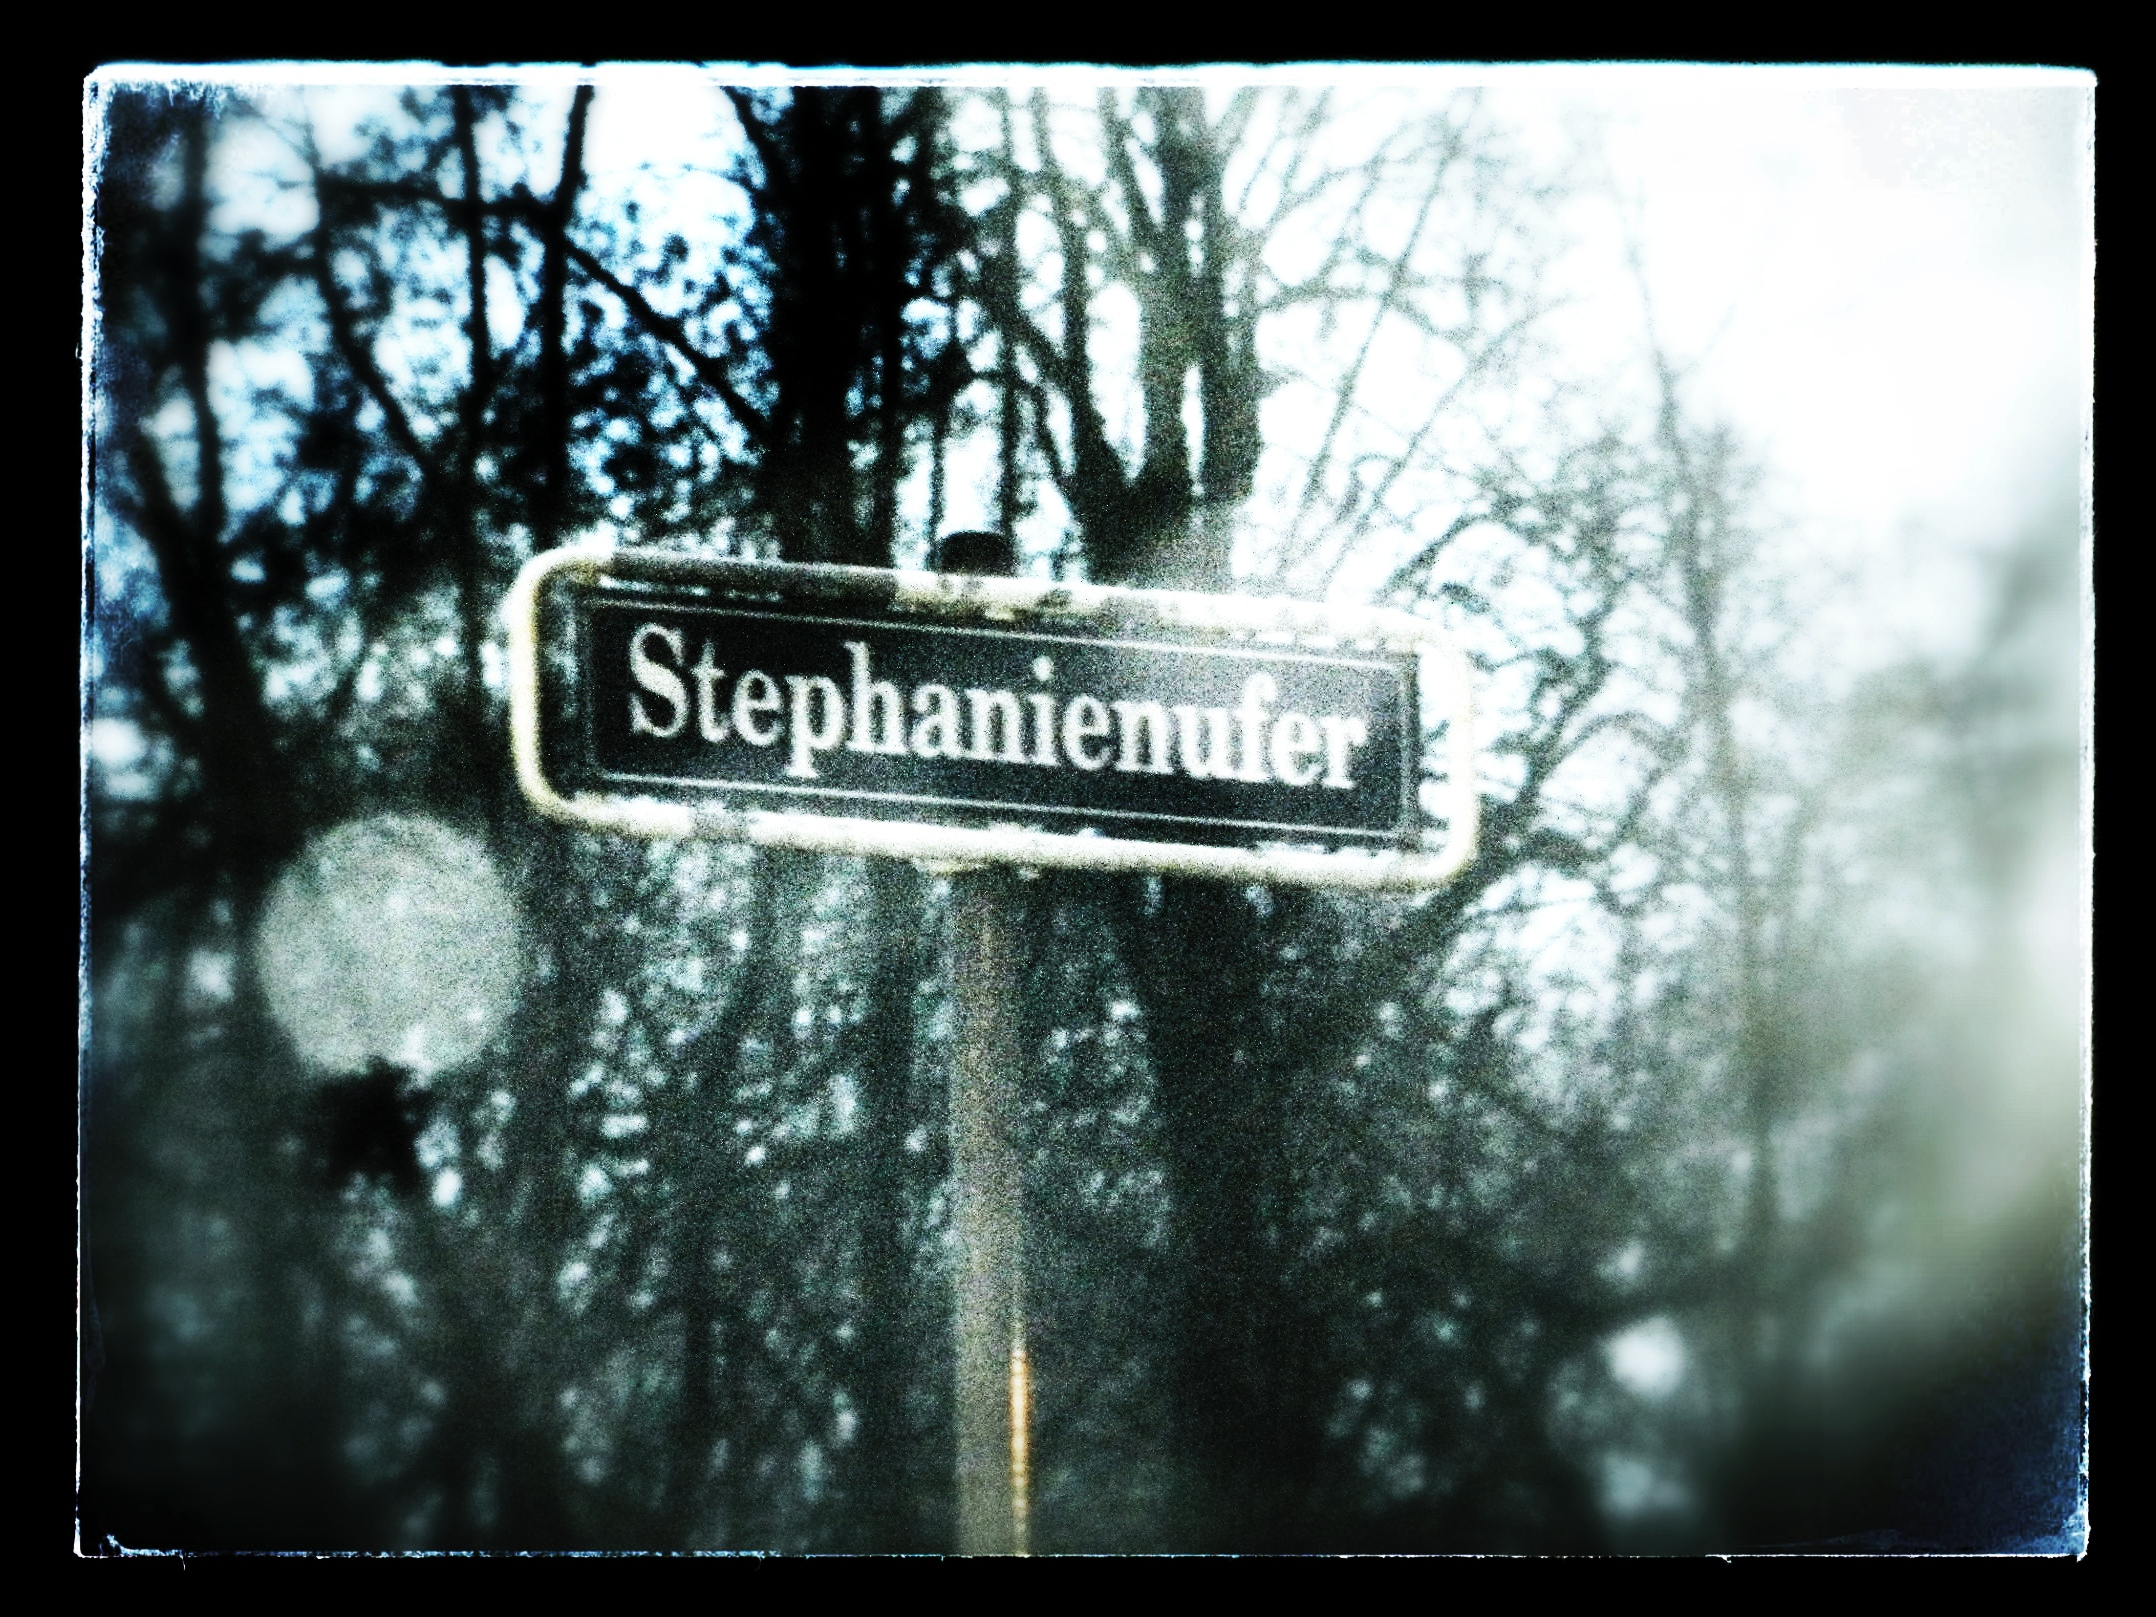 Stephanienufer